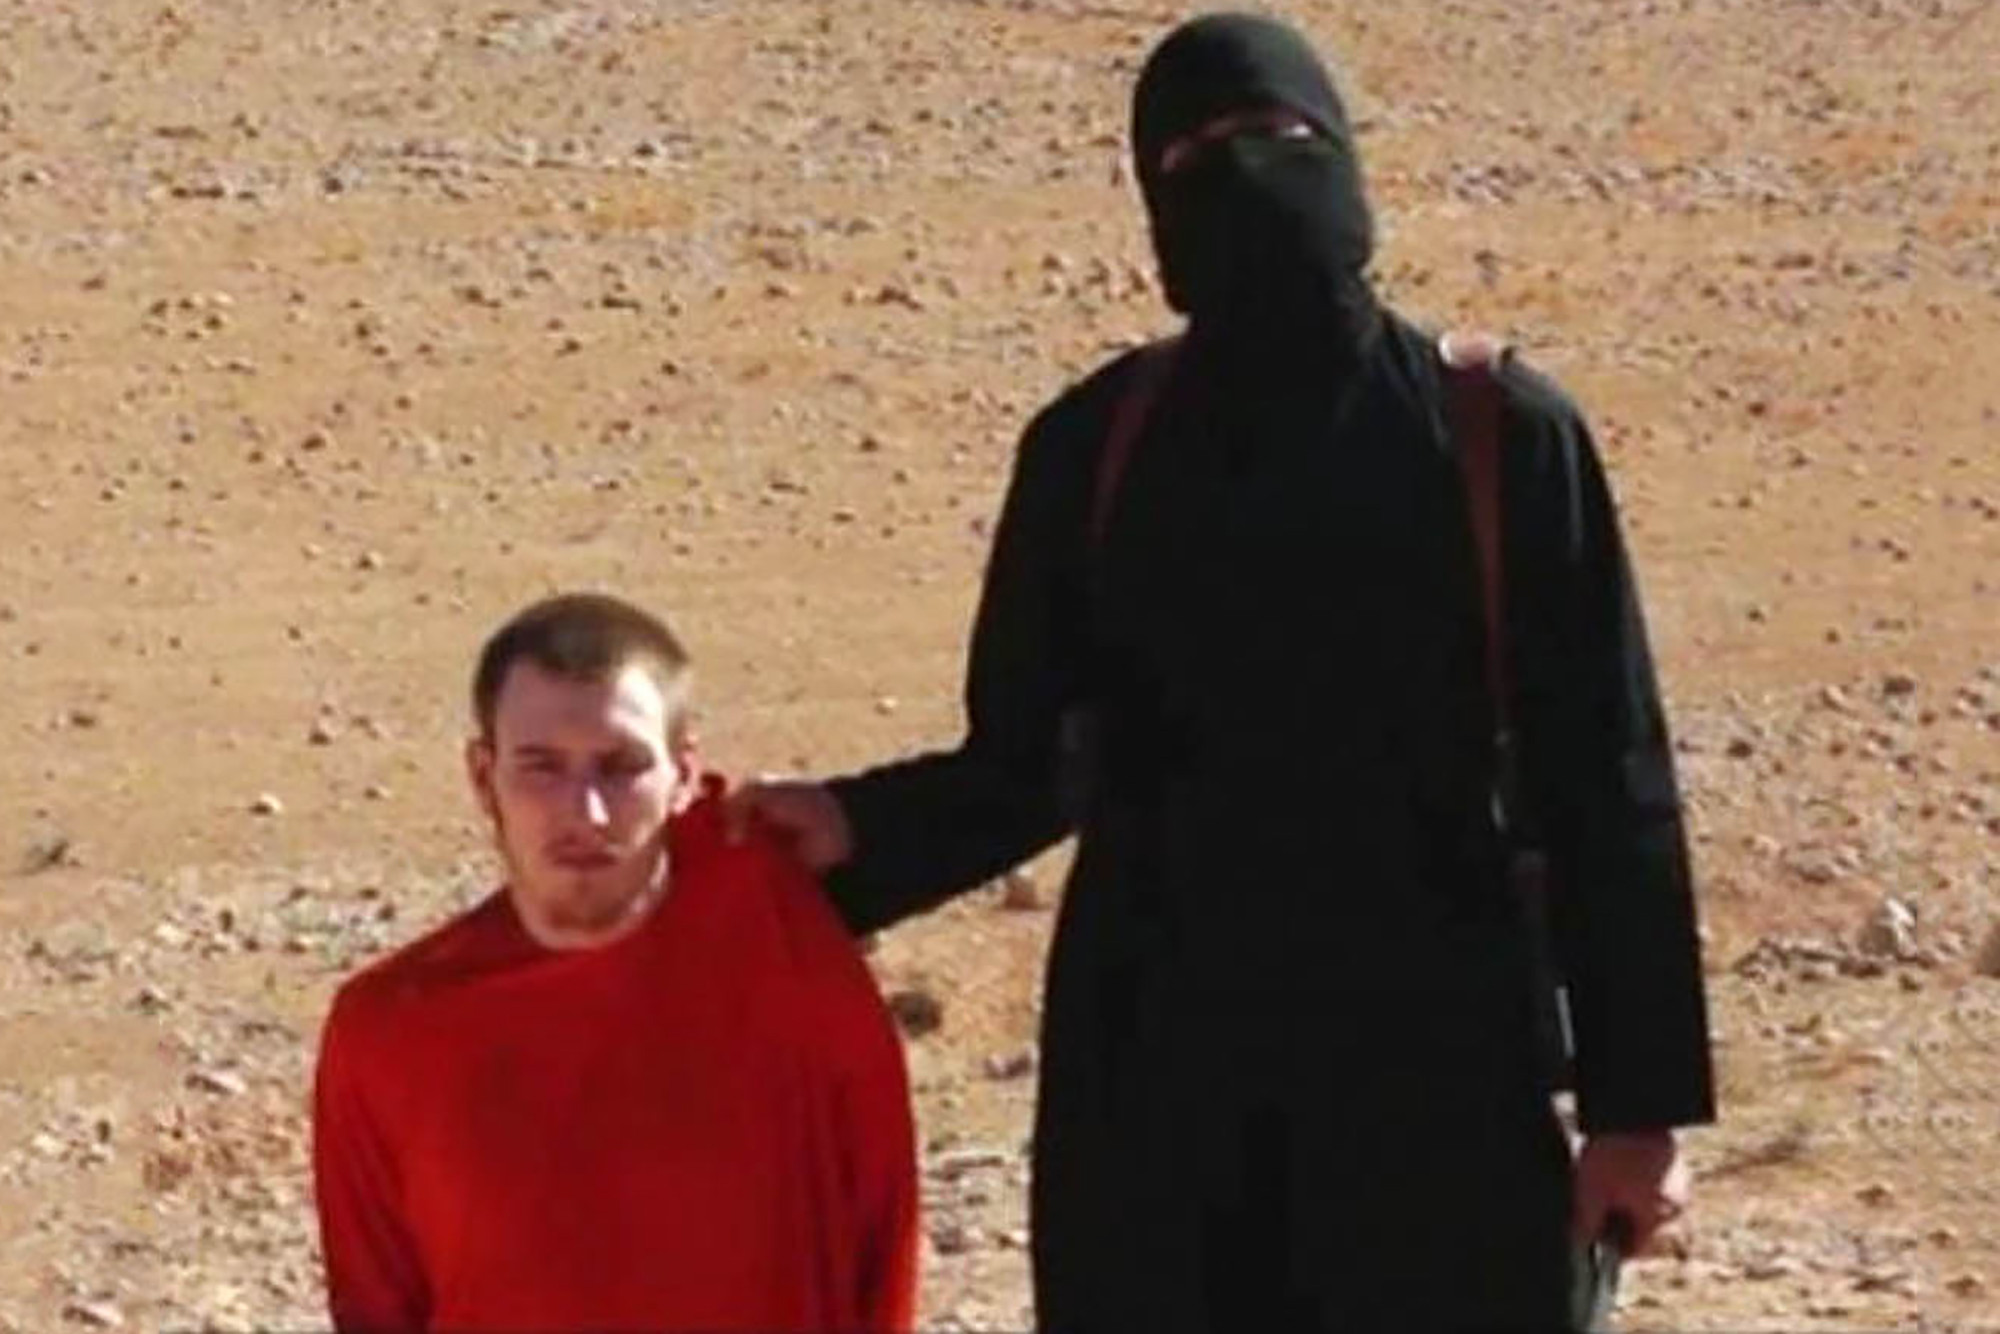 ISIS leader behind beheading of American is killed in airstrike